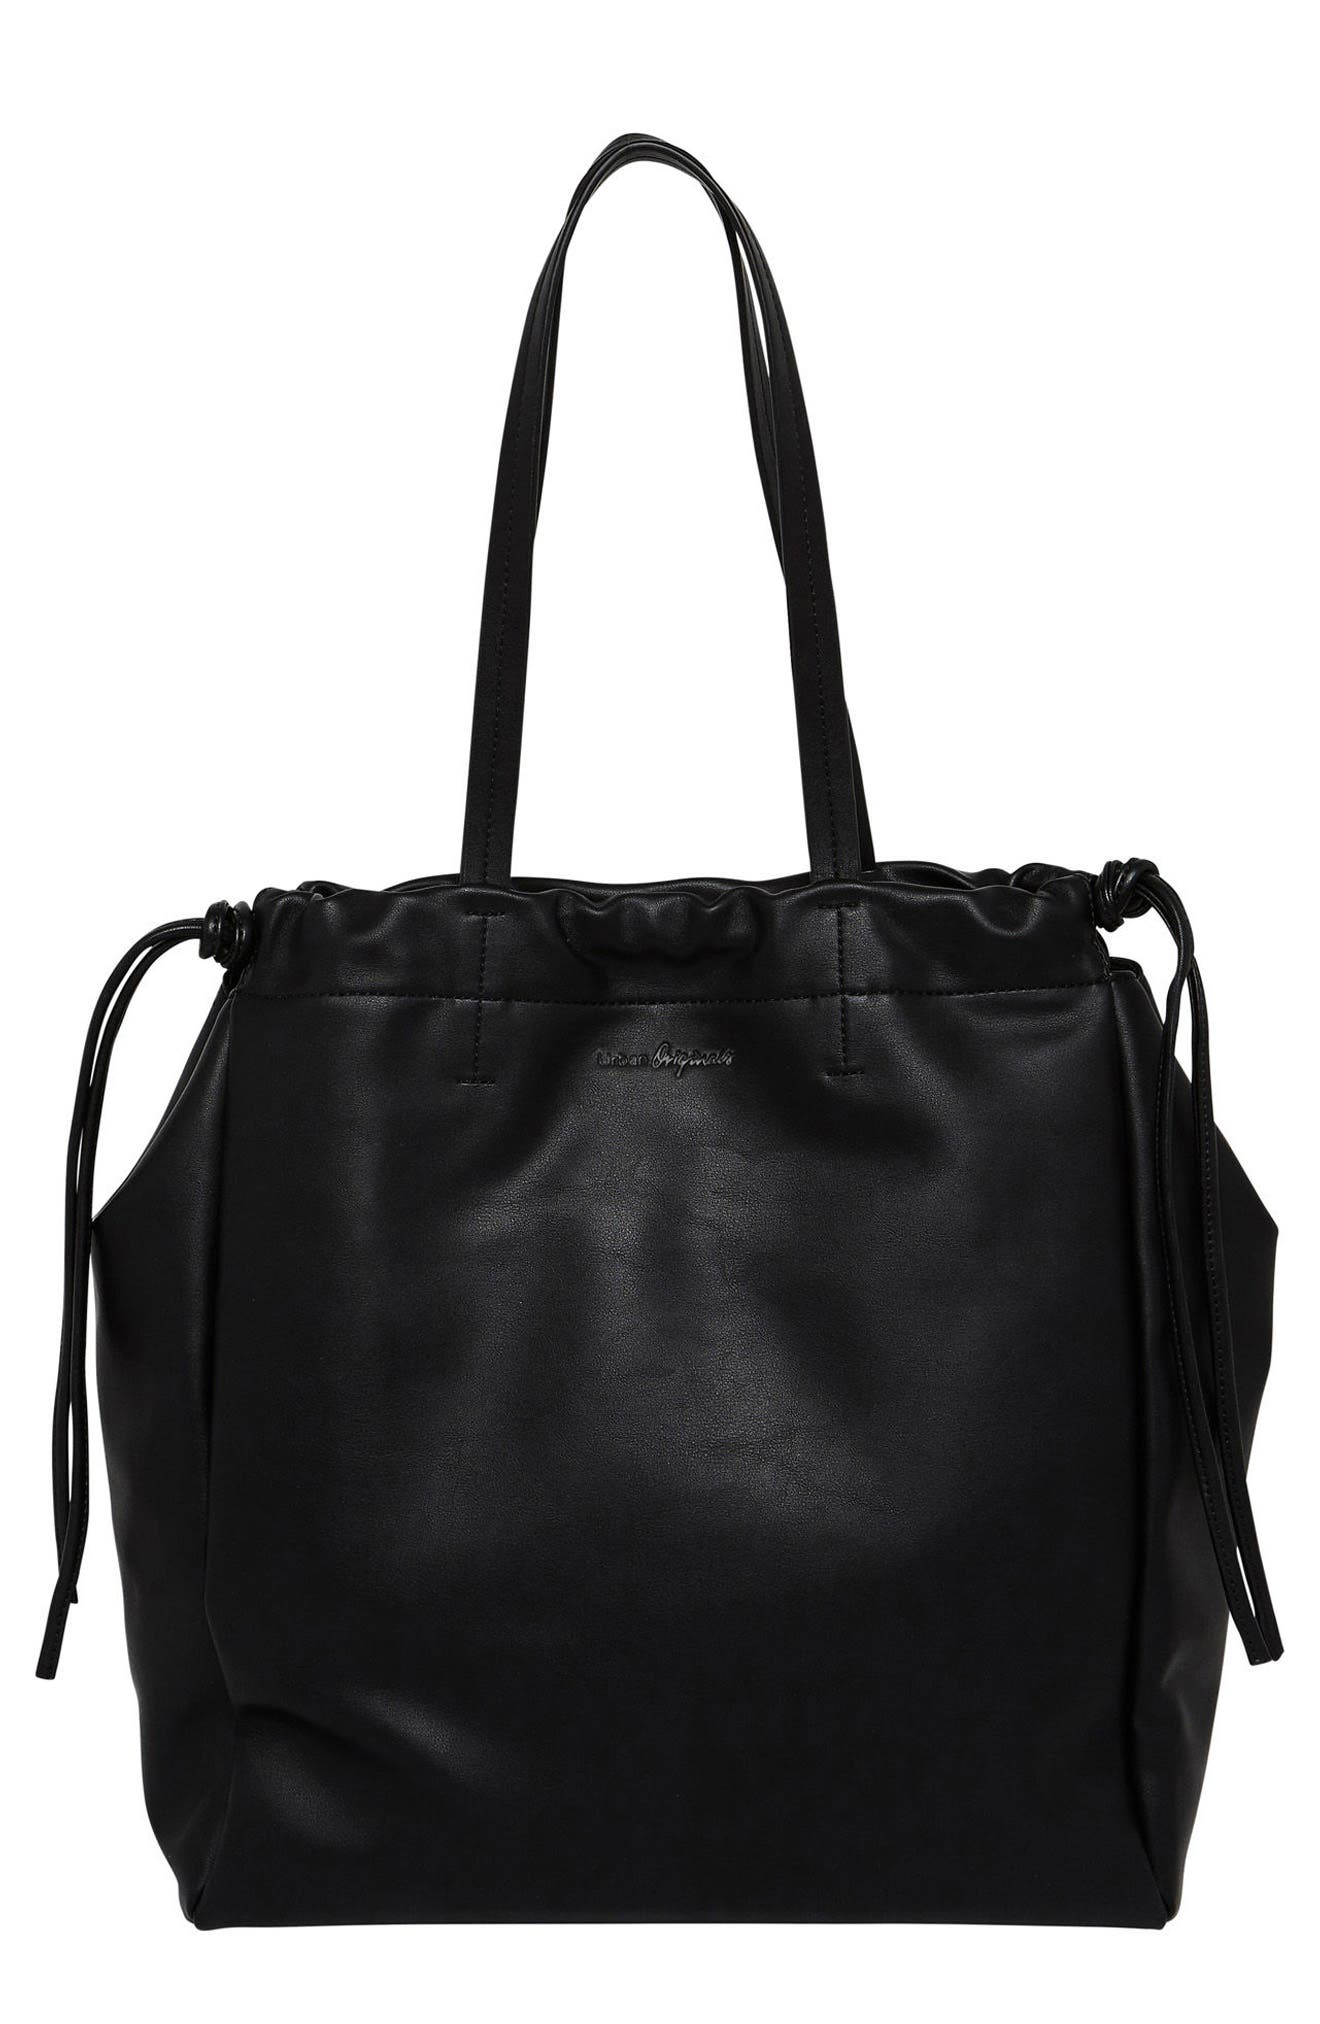 Light & Shadows Vegan Leather Tote,                             Main thumbnail 1, color,                             001